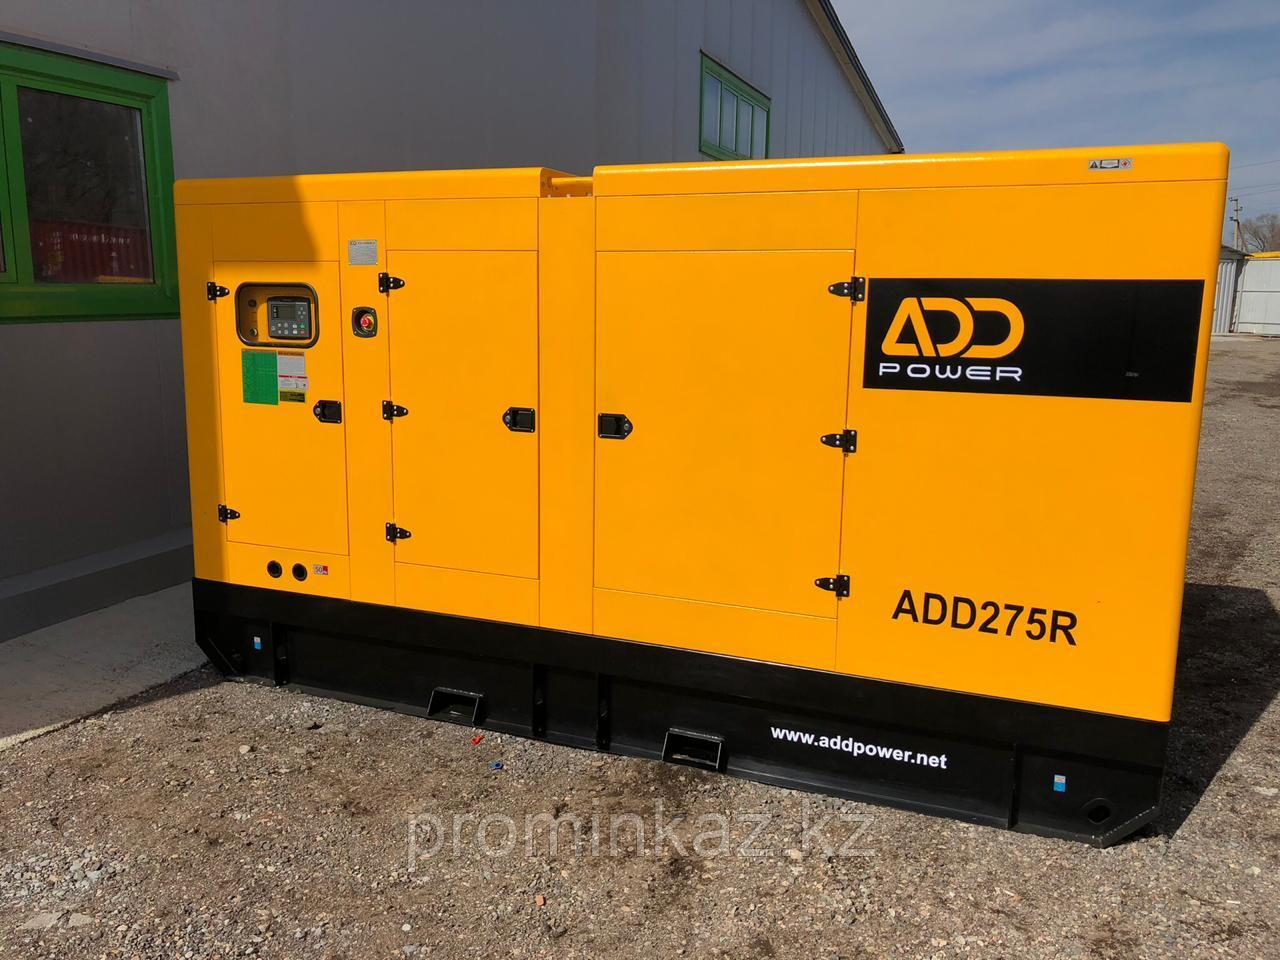 Дизельный генератор ADD275R POWER - 220 кВт с АВР